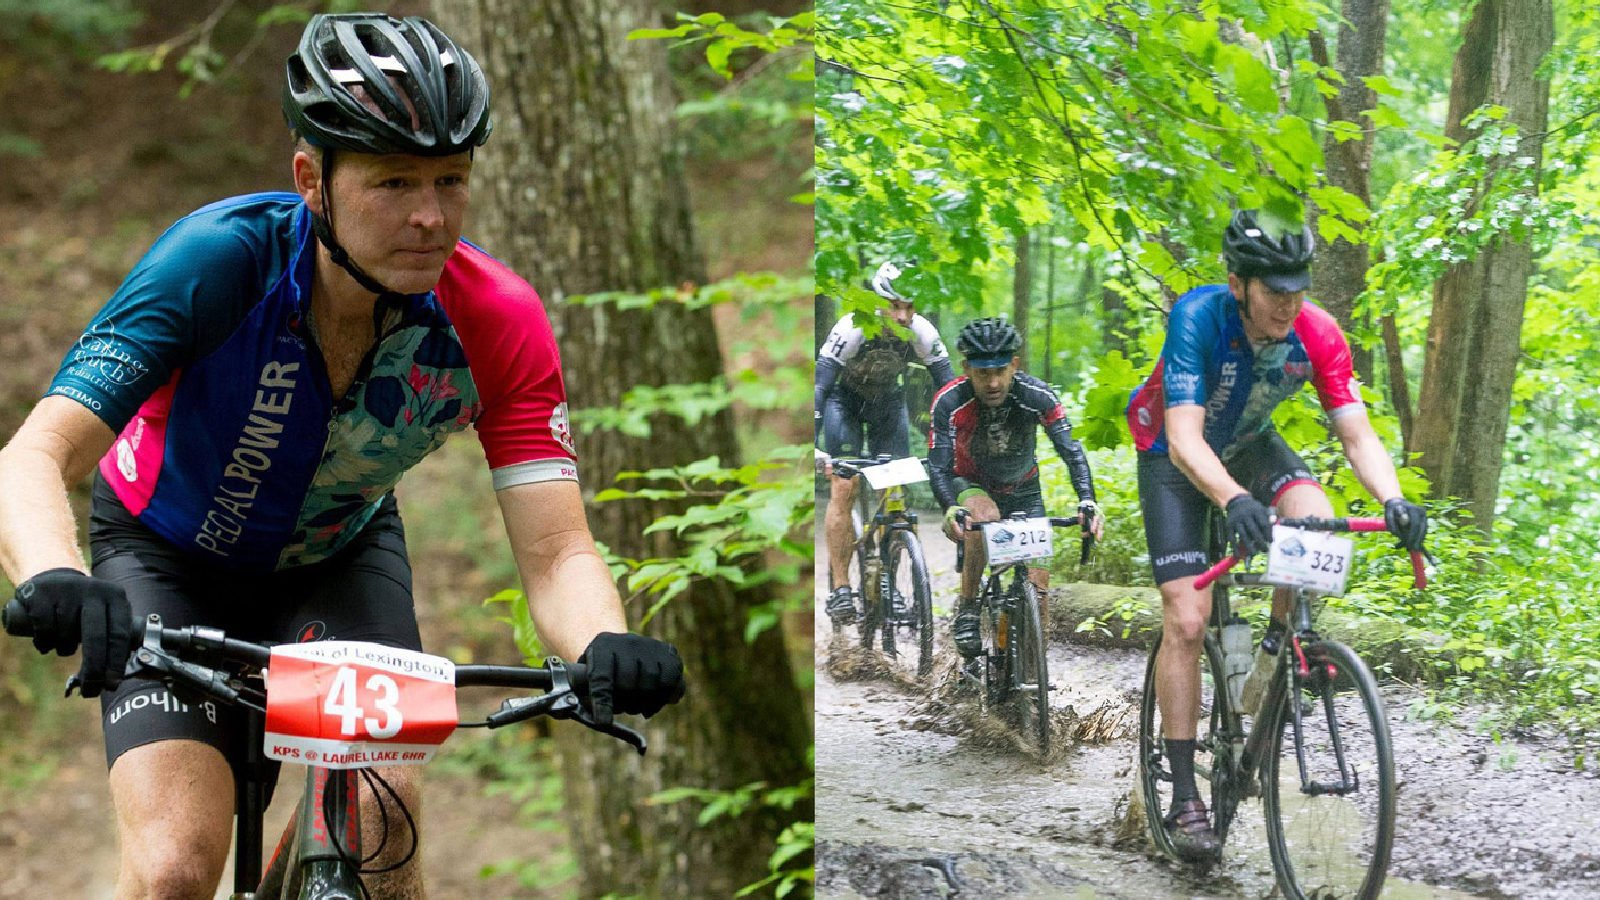 You're Doing Everything Wrong and Other Lessons from Amateur Bicycle Racing